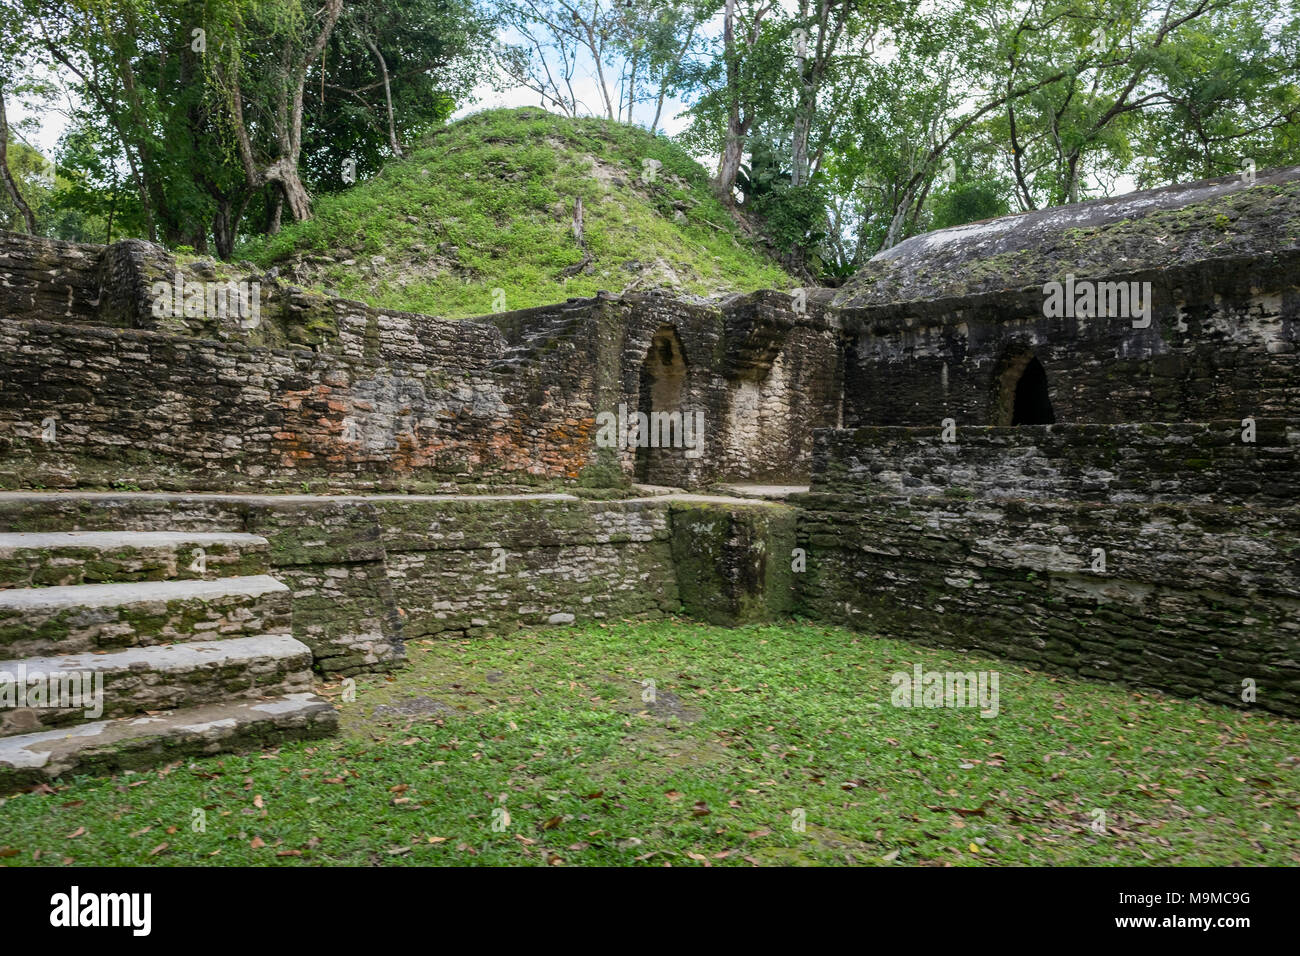 Ancient Mayan ruins of Cahel Pech, Belize including a temple and residential area - Stock Image